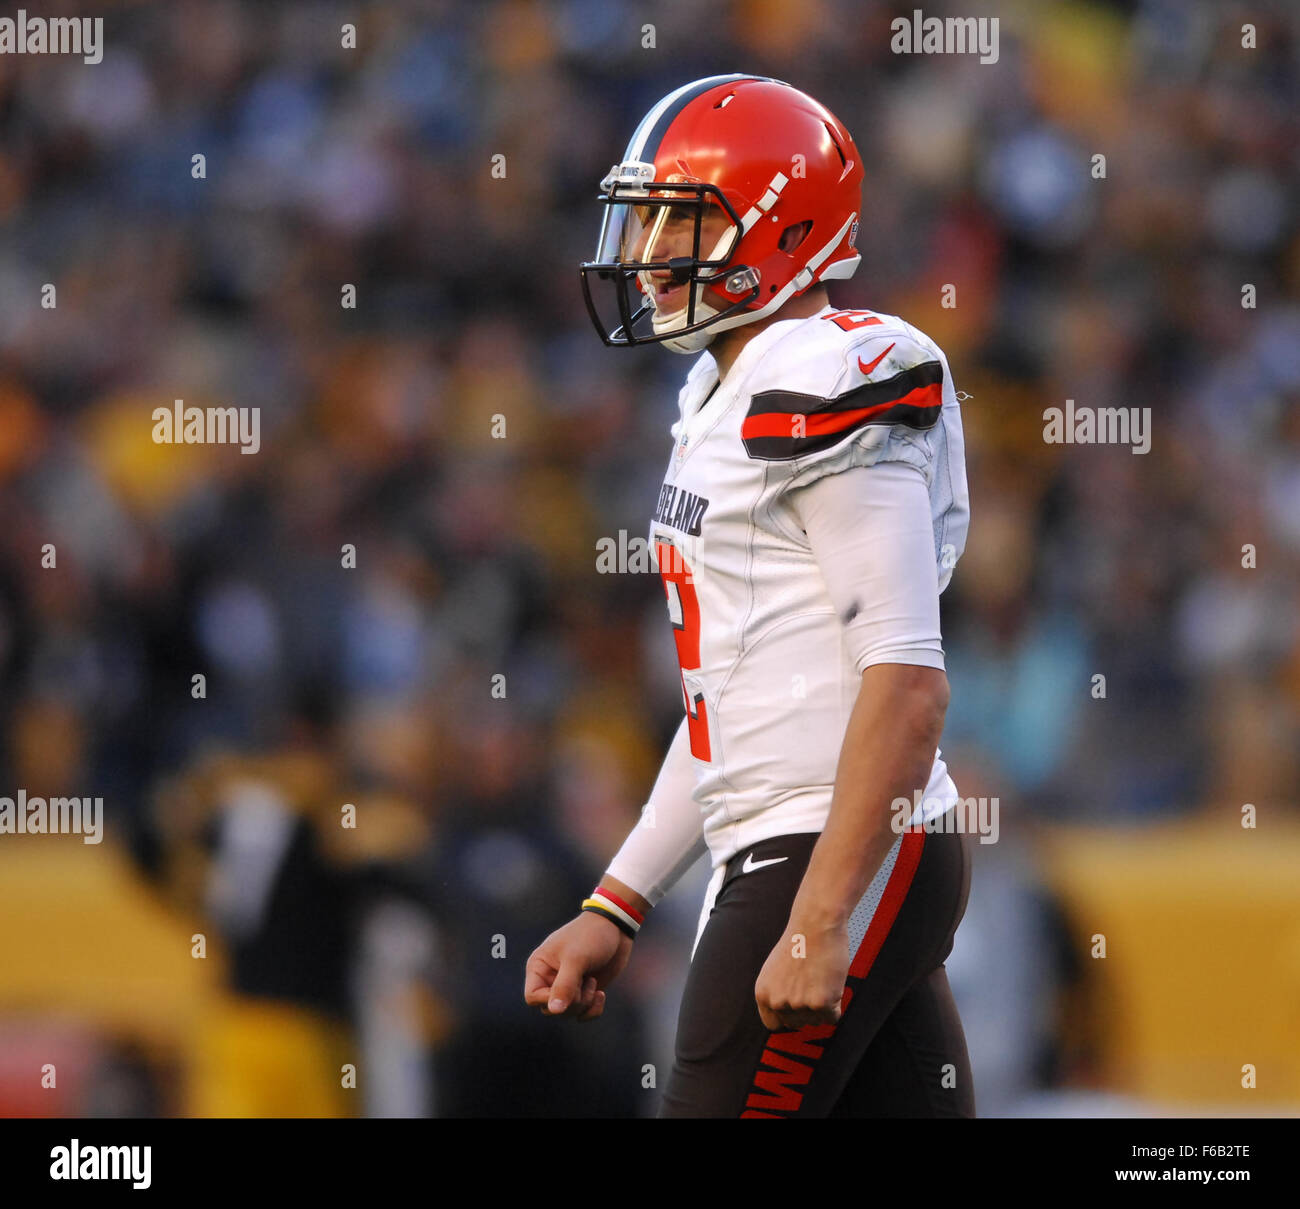 0a98e1823 Johnny Manziel #2 during the Cleveland Browns vs Pittsburgh Steelers game  at Heinz Field in Pittsburgh, PA. Jason Pohuski/CSM/Alamy Live News